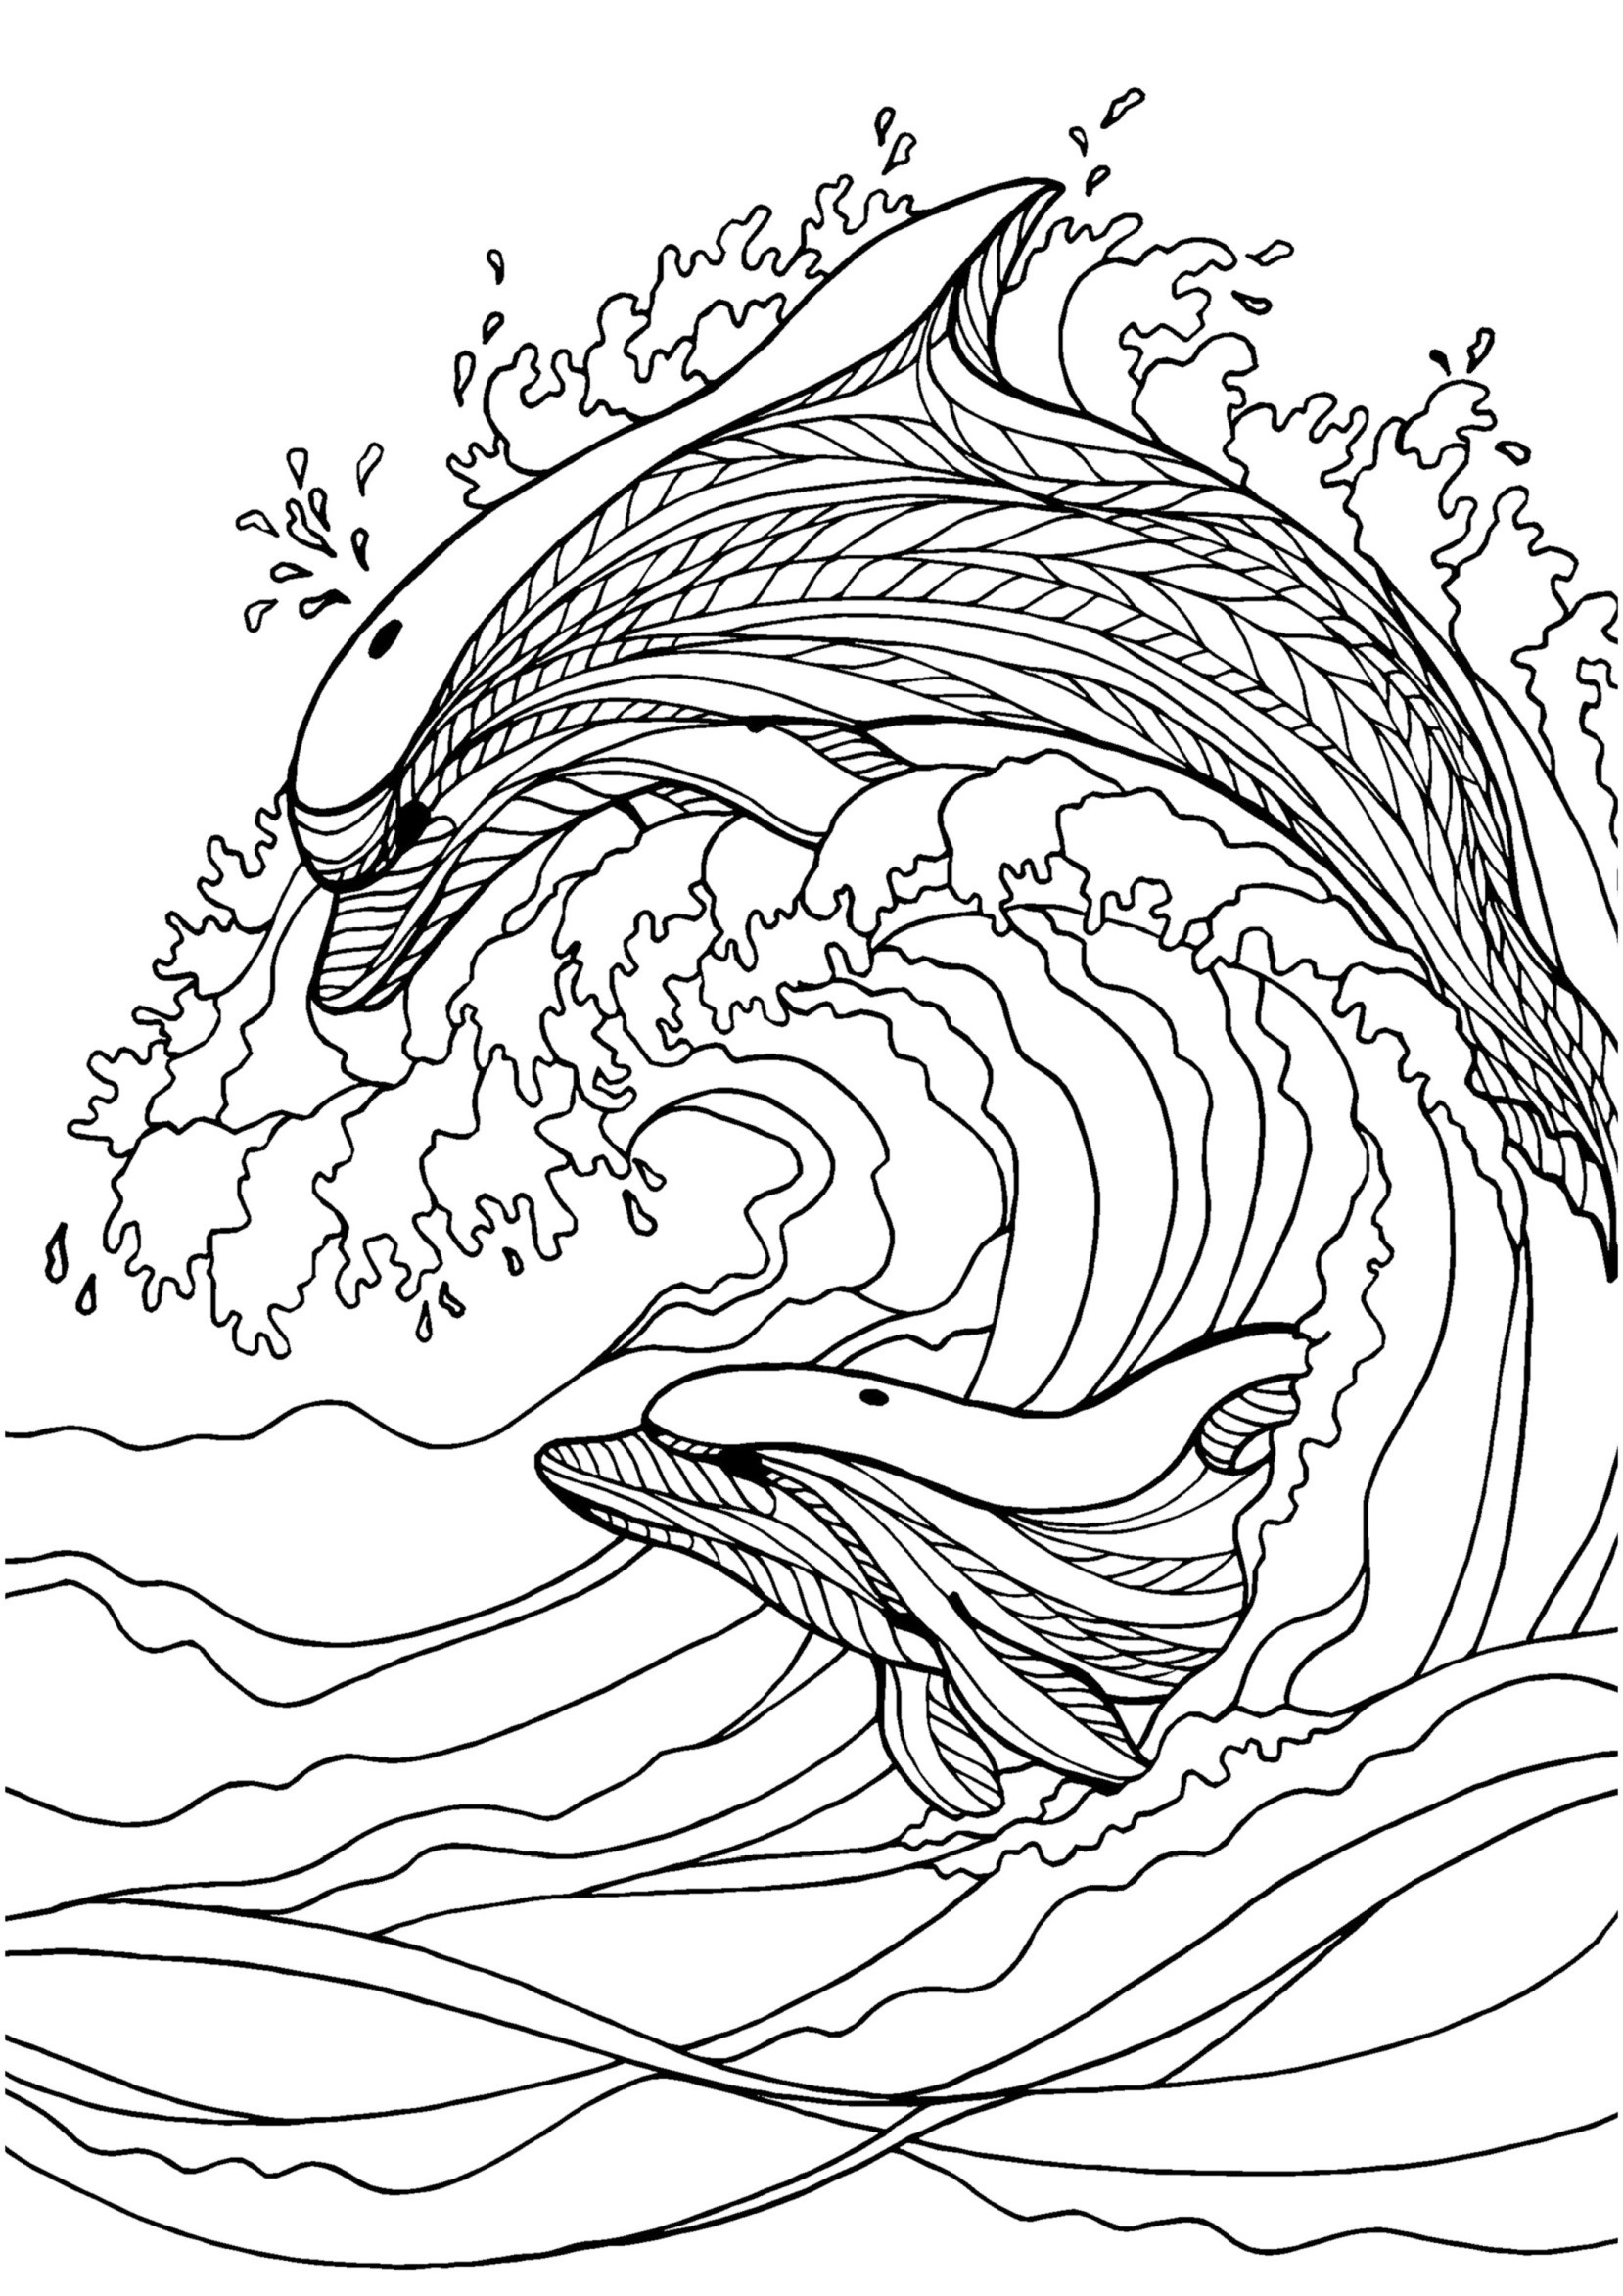 coloring dolphin pages print download my experience of making dolphin dolphin pages coloring